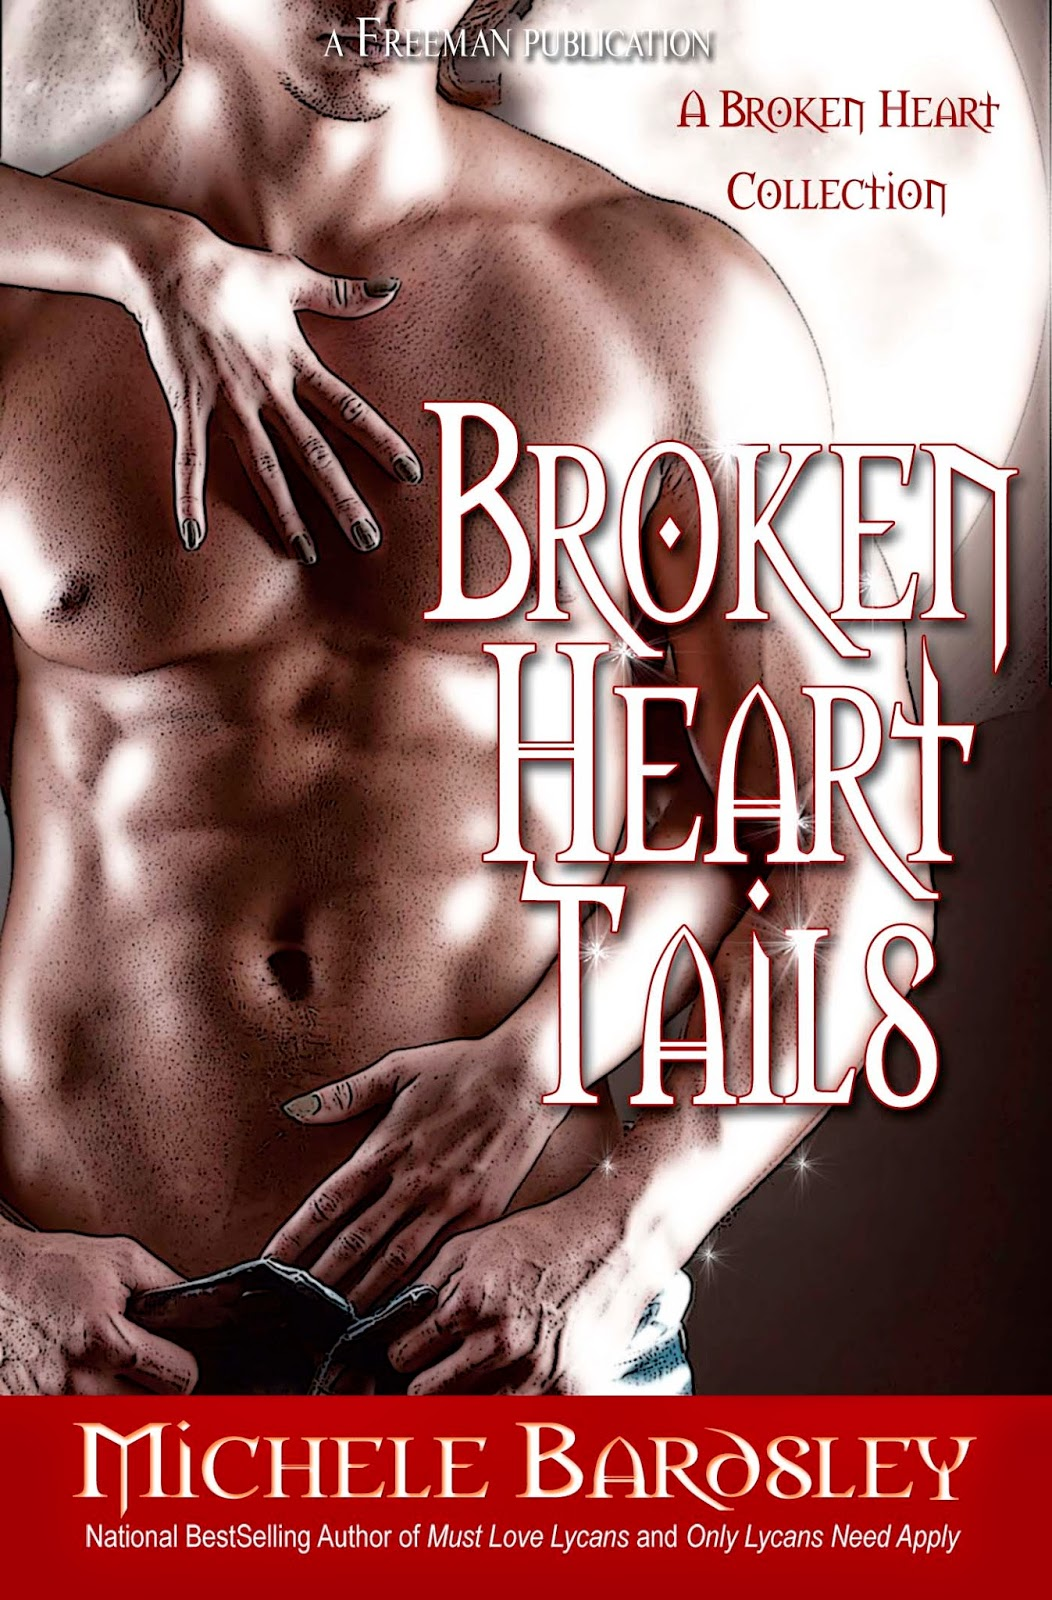 Broken Heart Tails is Book 8.5 in the Broken Heart series by Michele Bardsley.